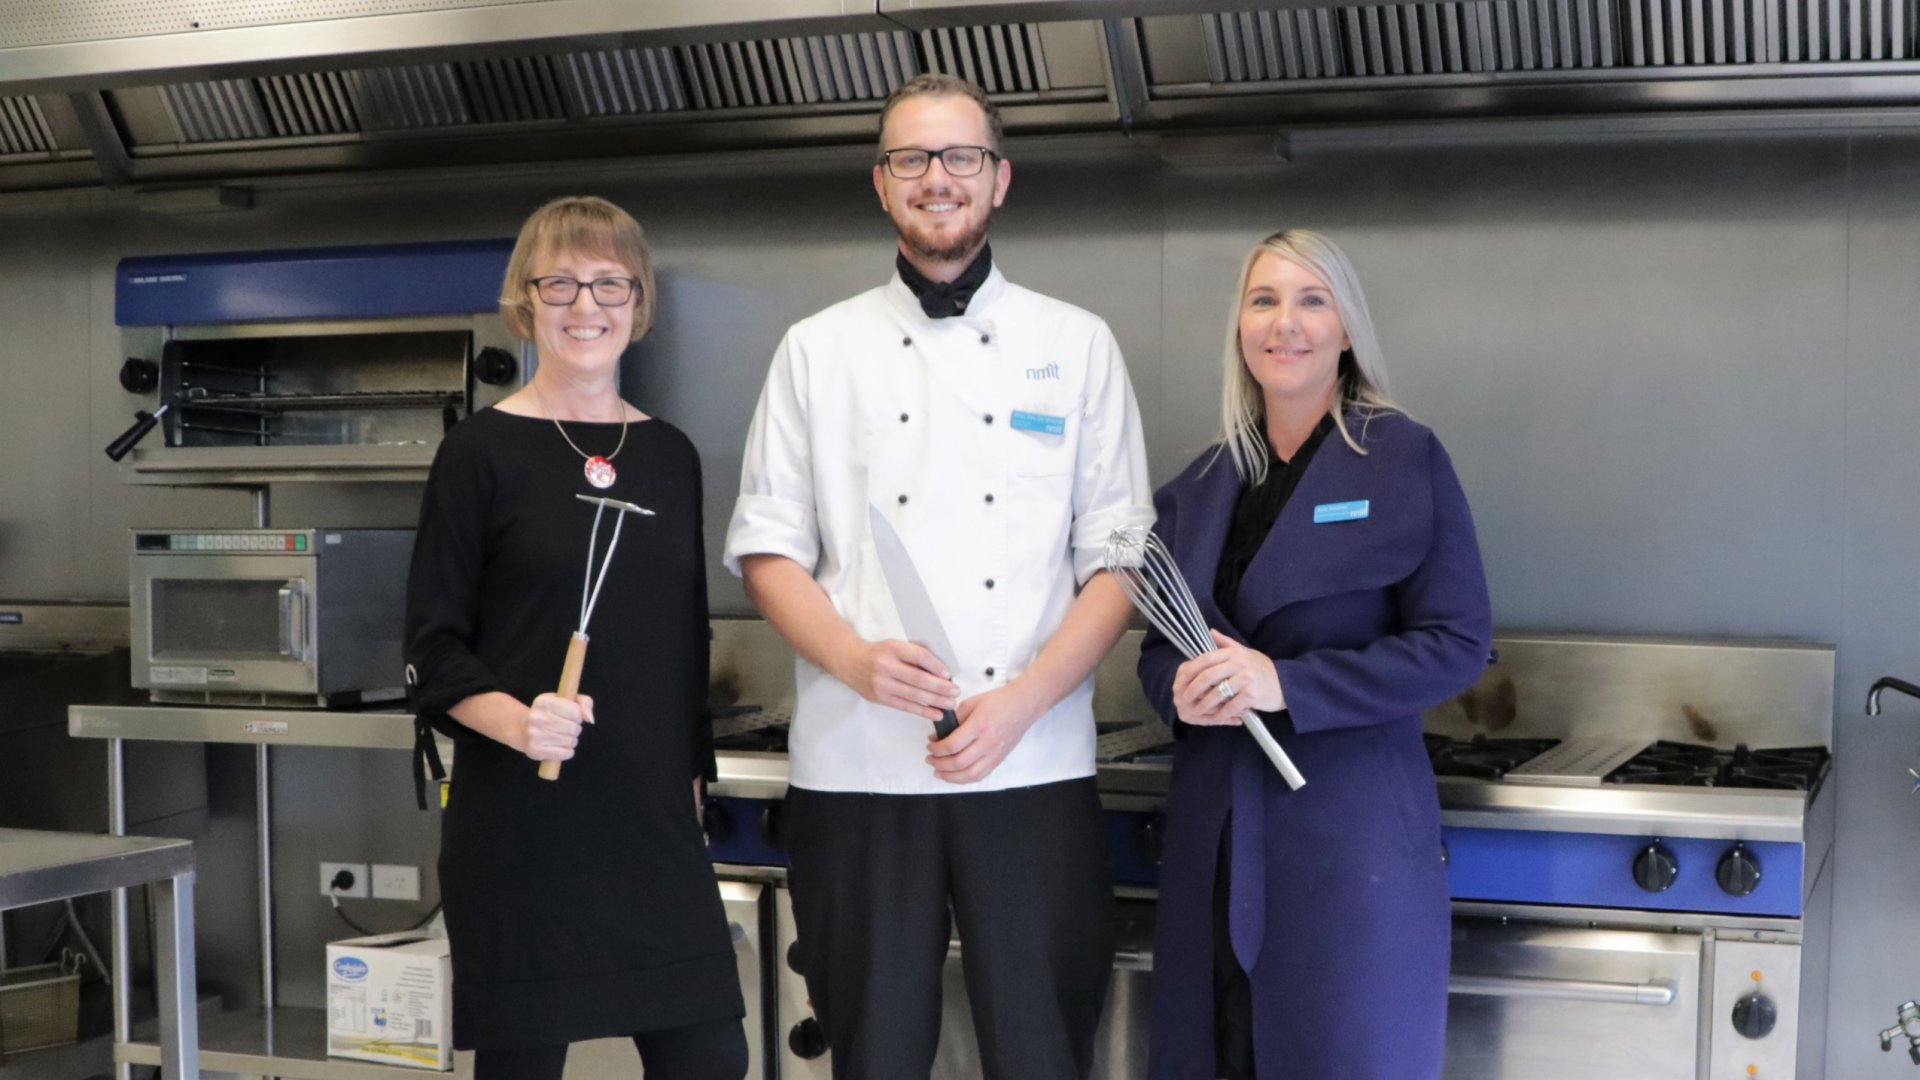 Photo: (L to R) Deputy Mayor Judene Edgar, NMIT Production & Catering Chef Rhys Van De Waardt and NMIT Hospitality Services Manager Kate Neame.